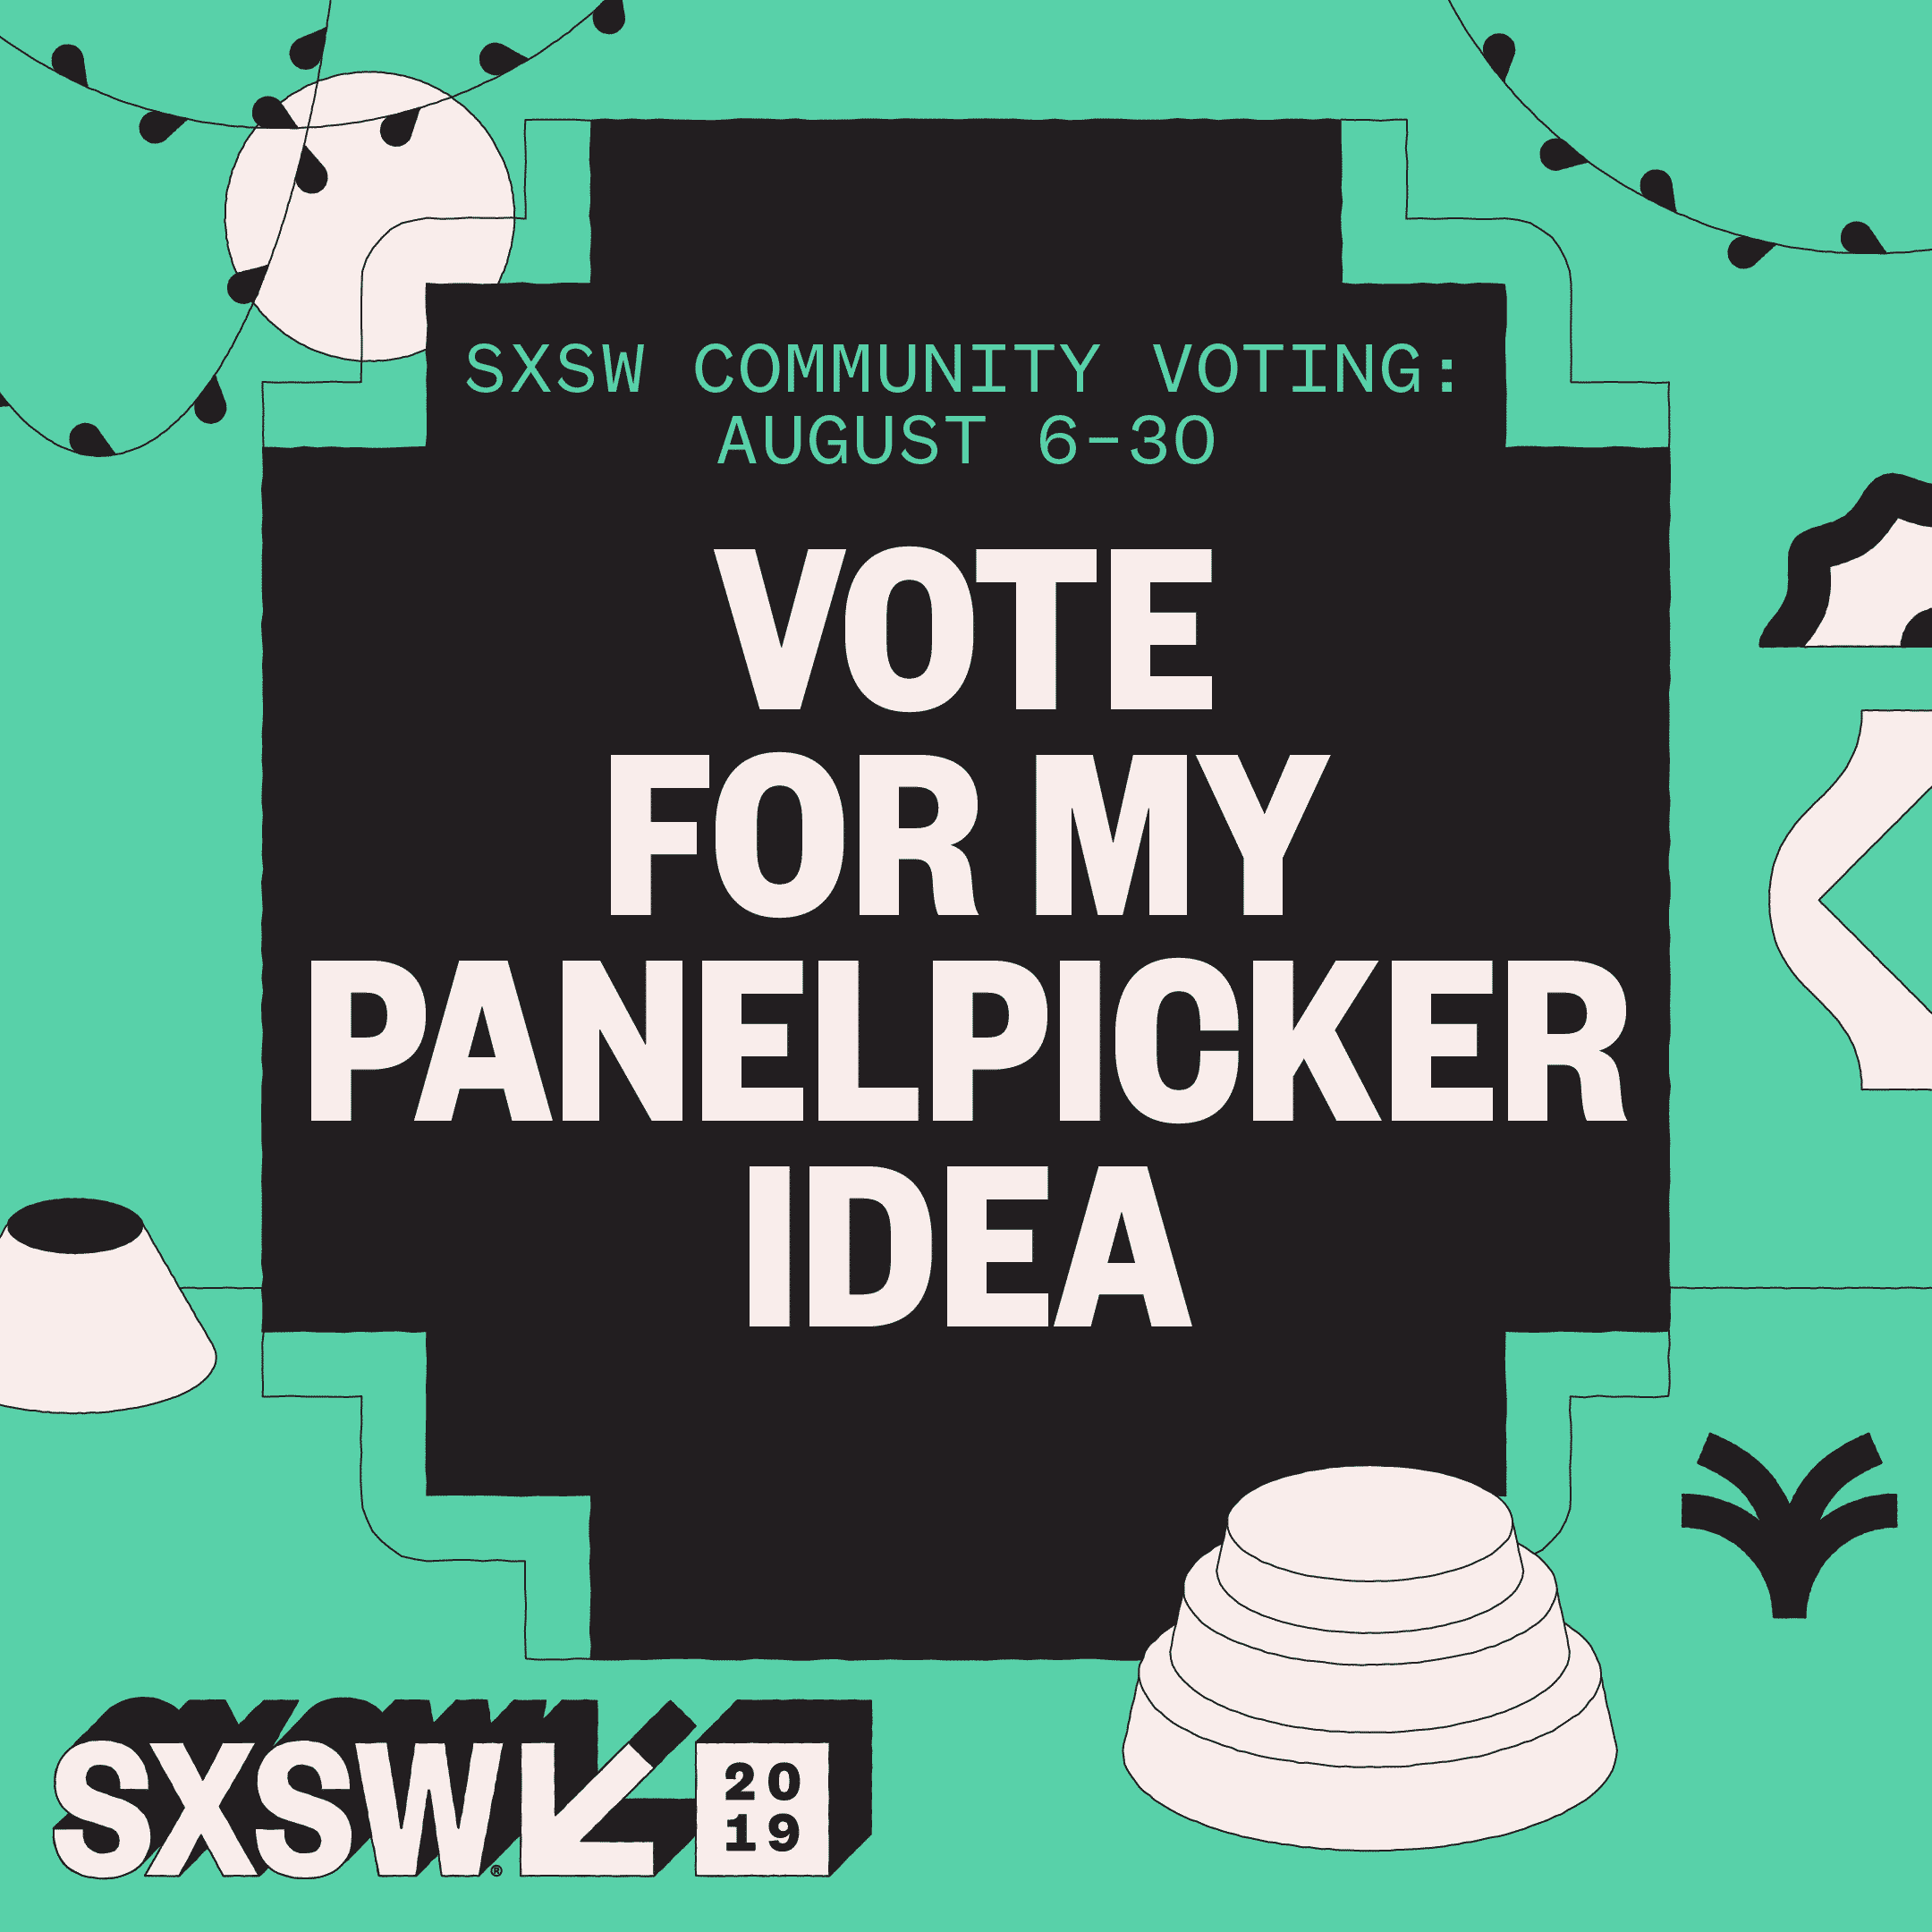 SXSW 2019 PanelPicker Voting for VR and Culture